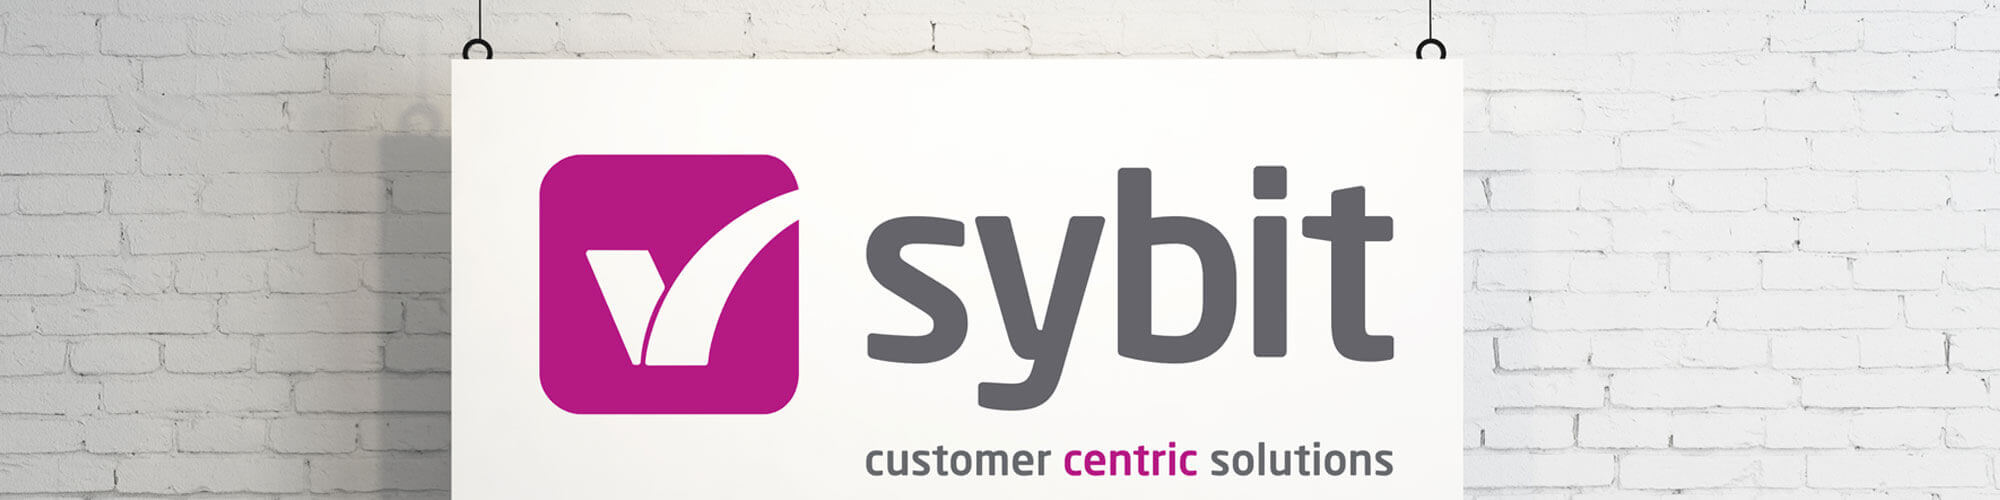 Sybit Logo Mock-up